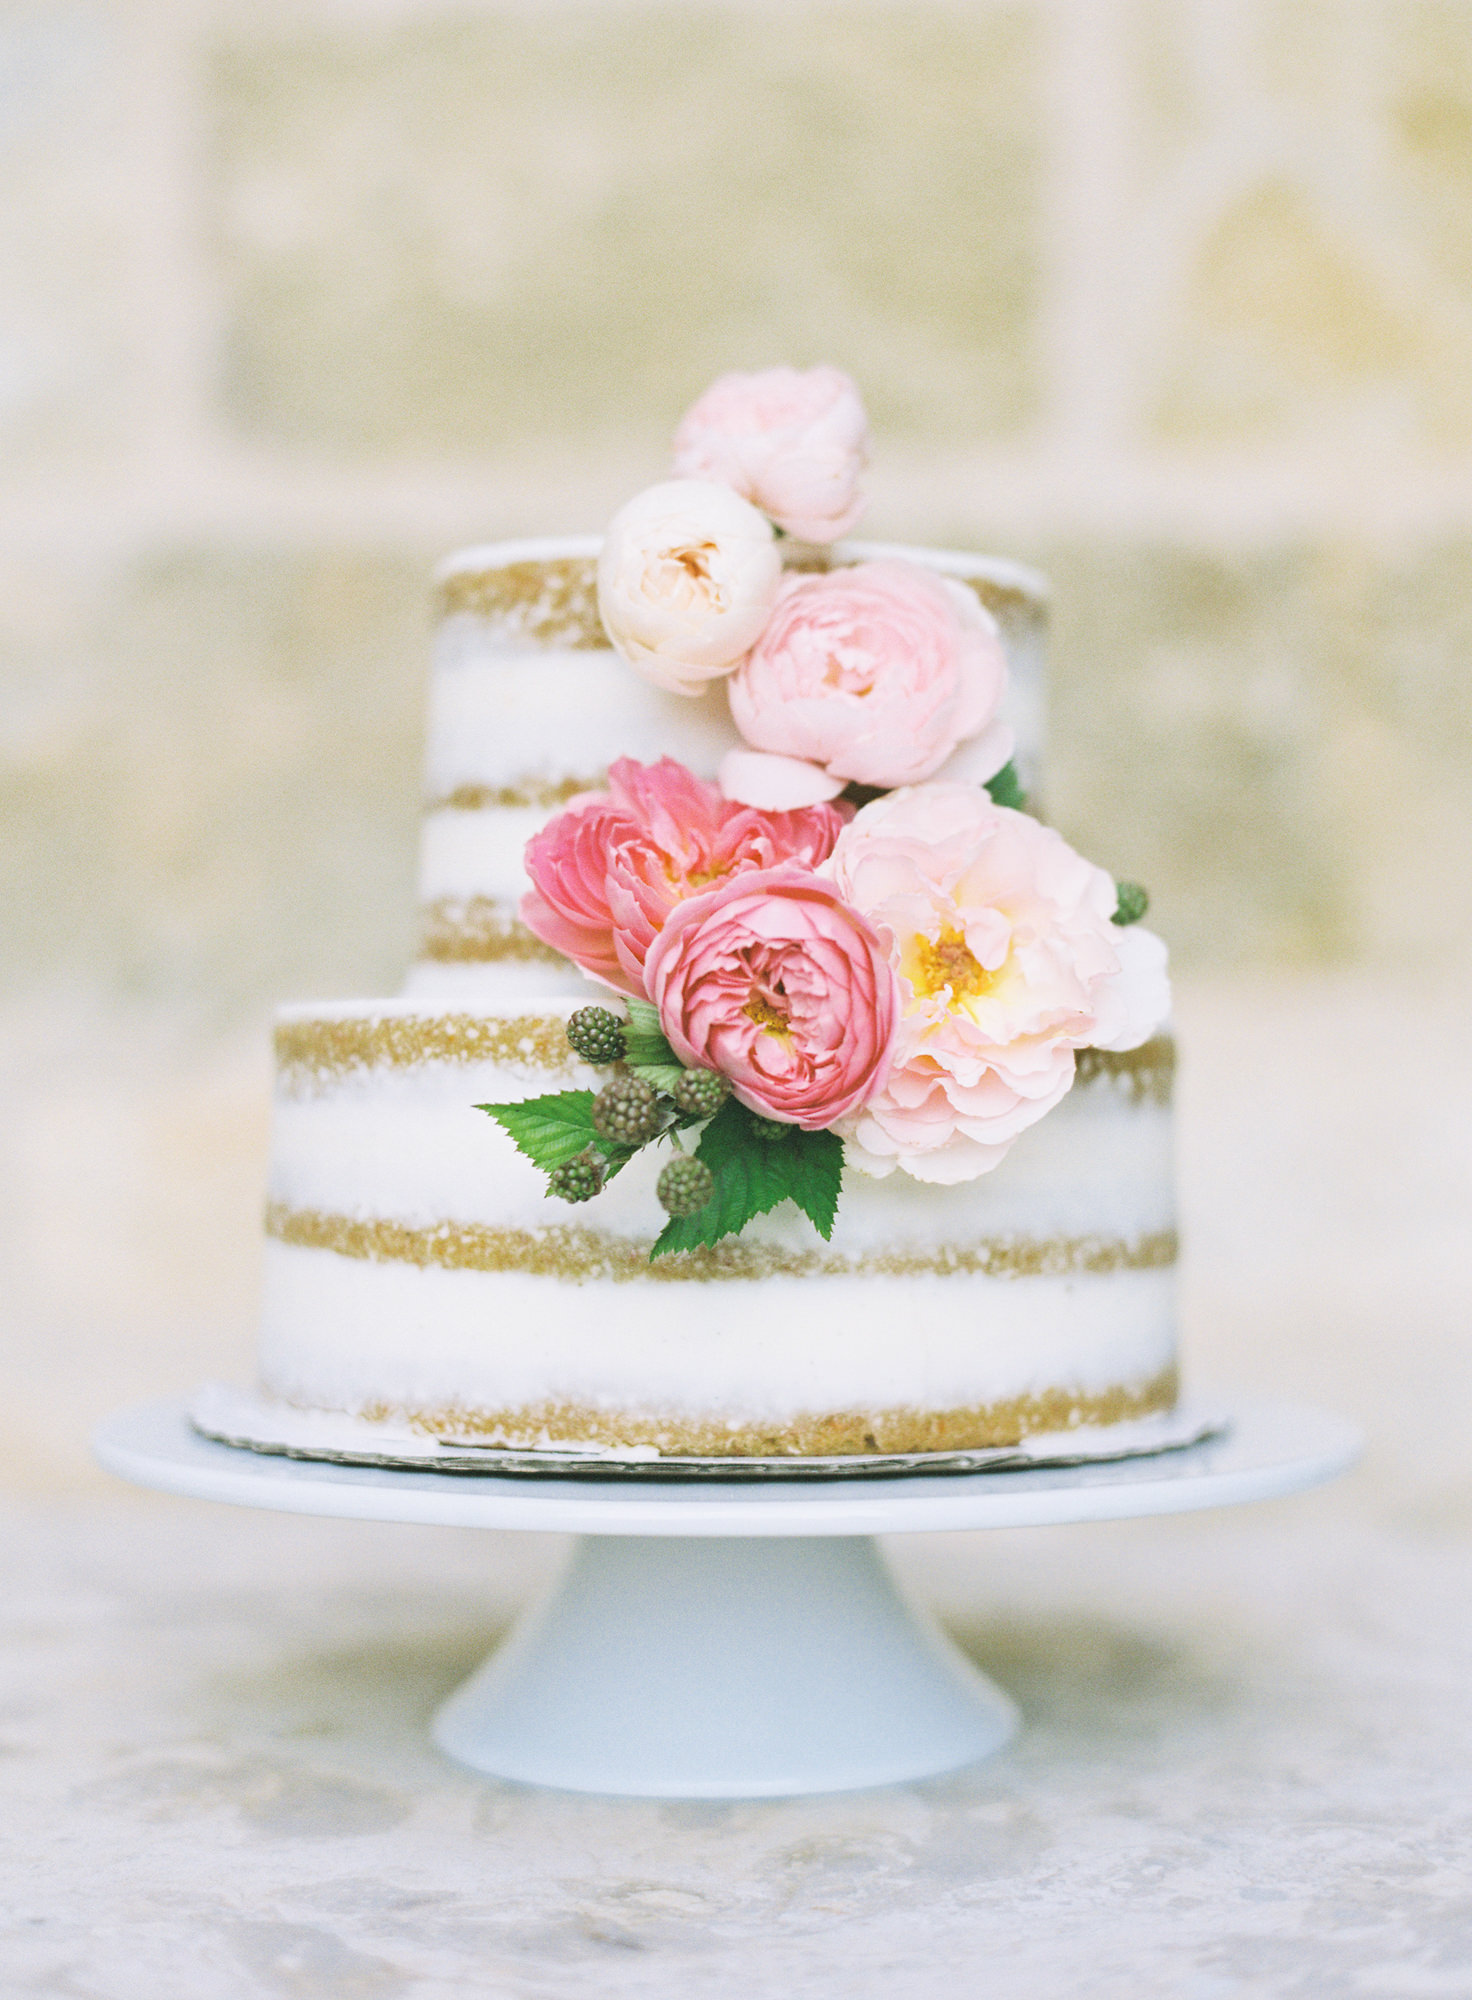 Wedding Cake with pink white roses Jen Huang Los Angeles wedding photographer